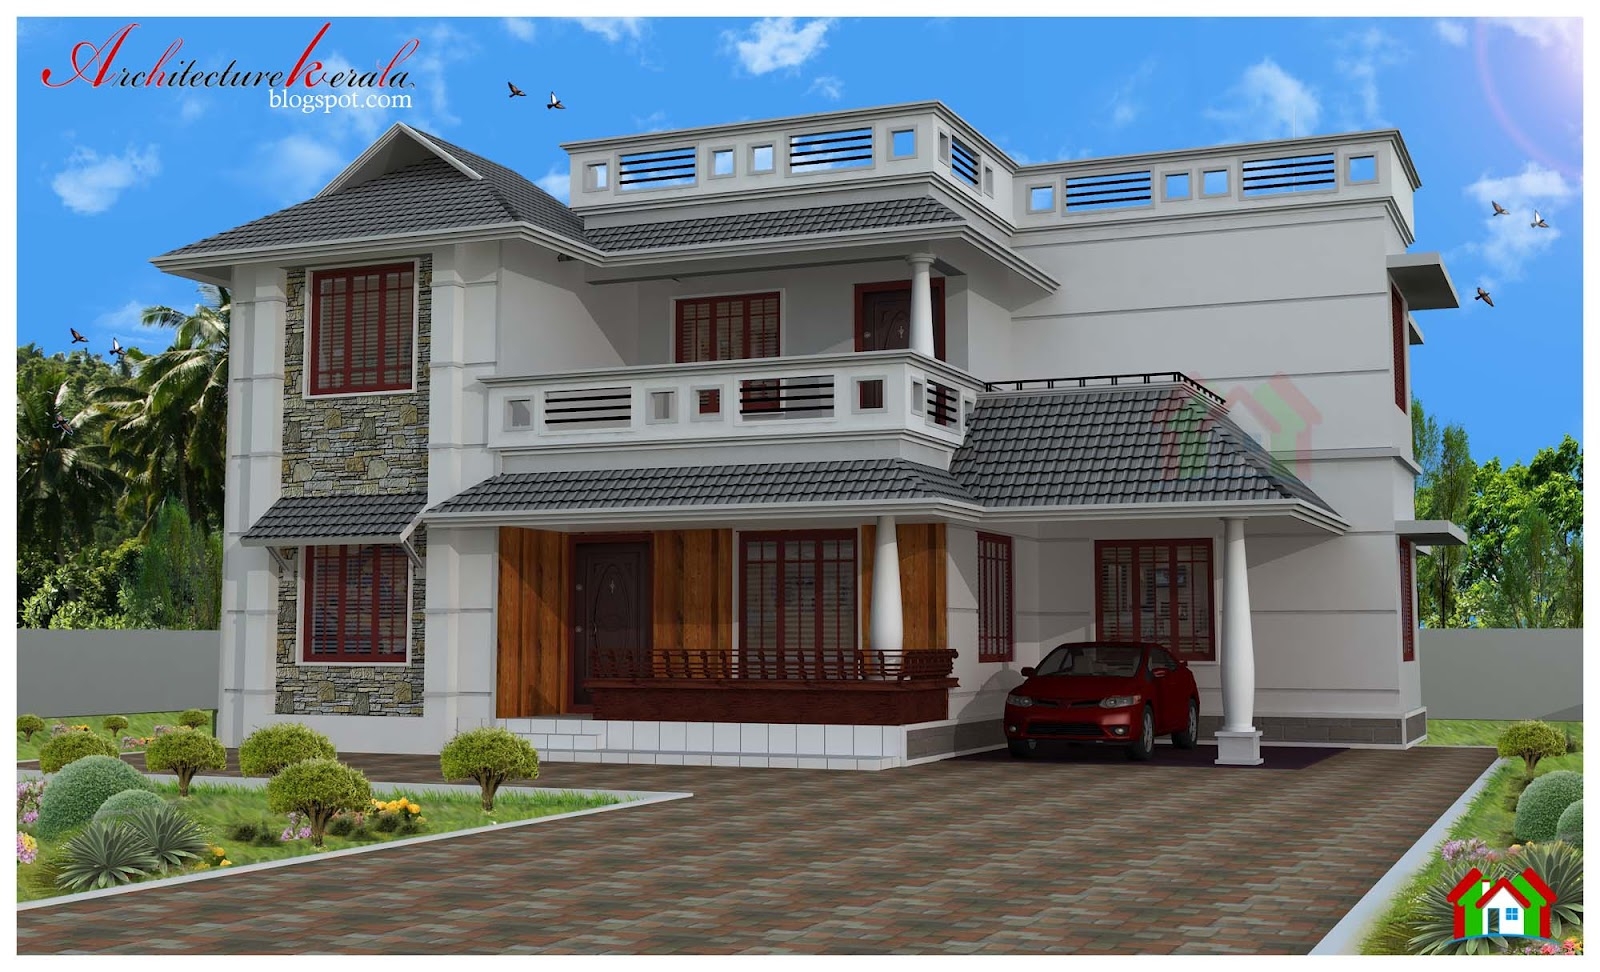 Architecture kerala four bed room house plan Home design latest